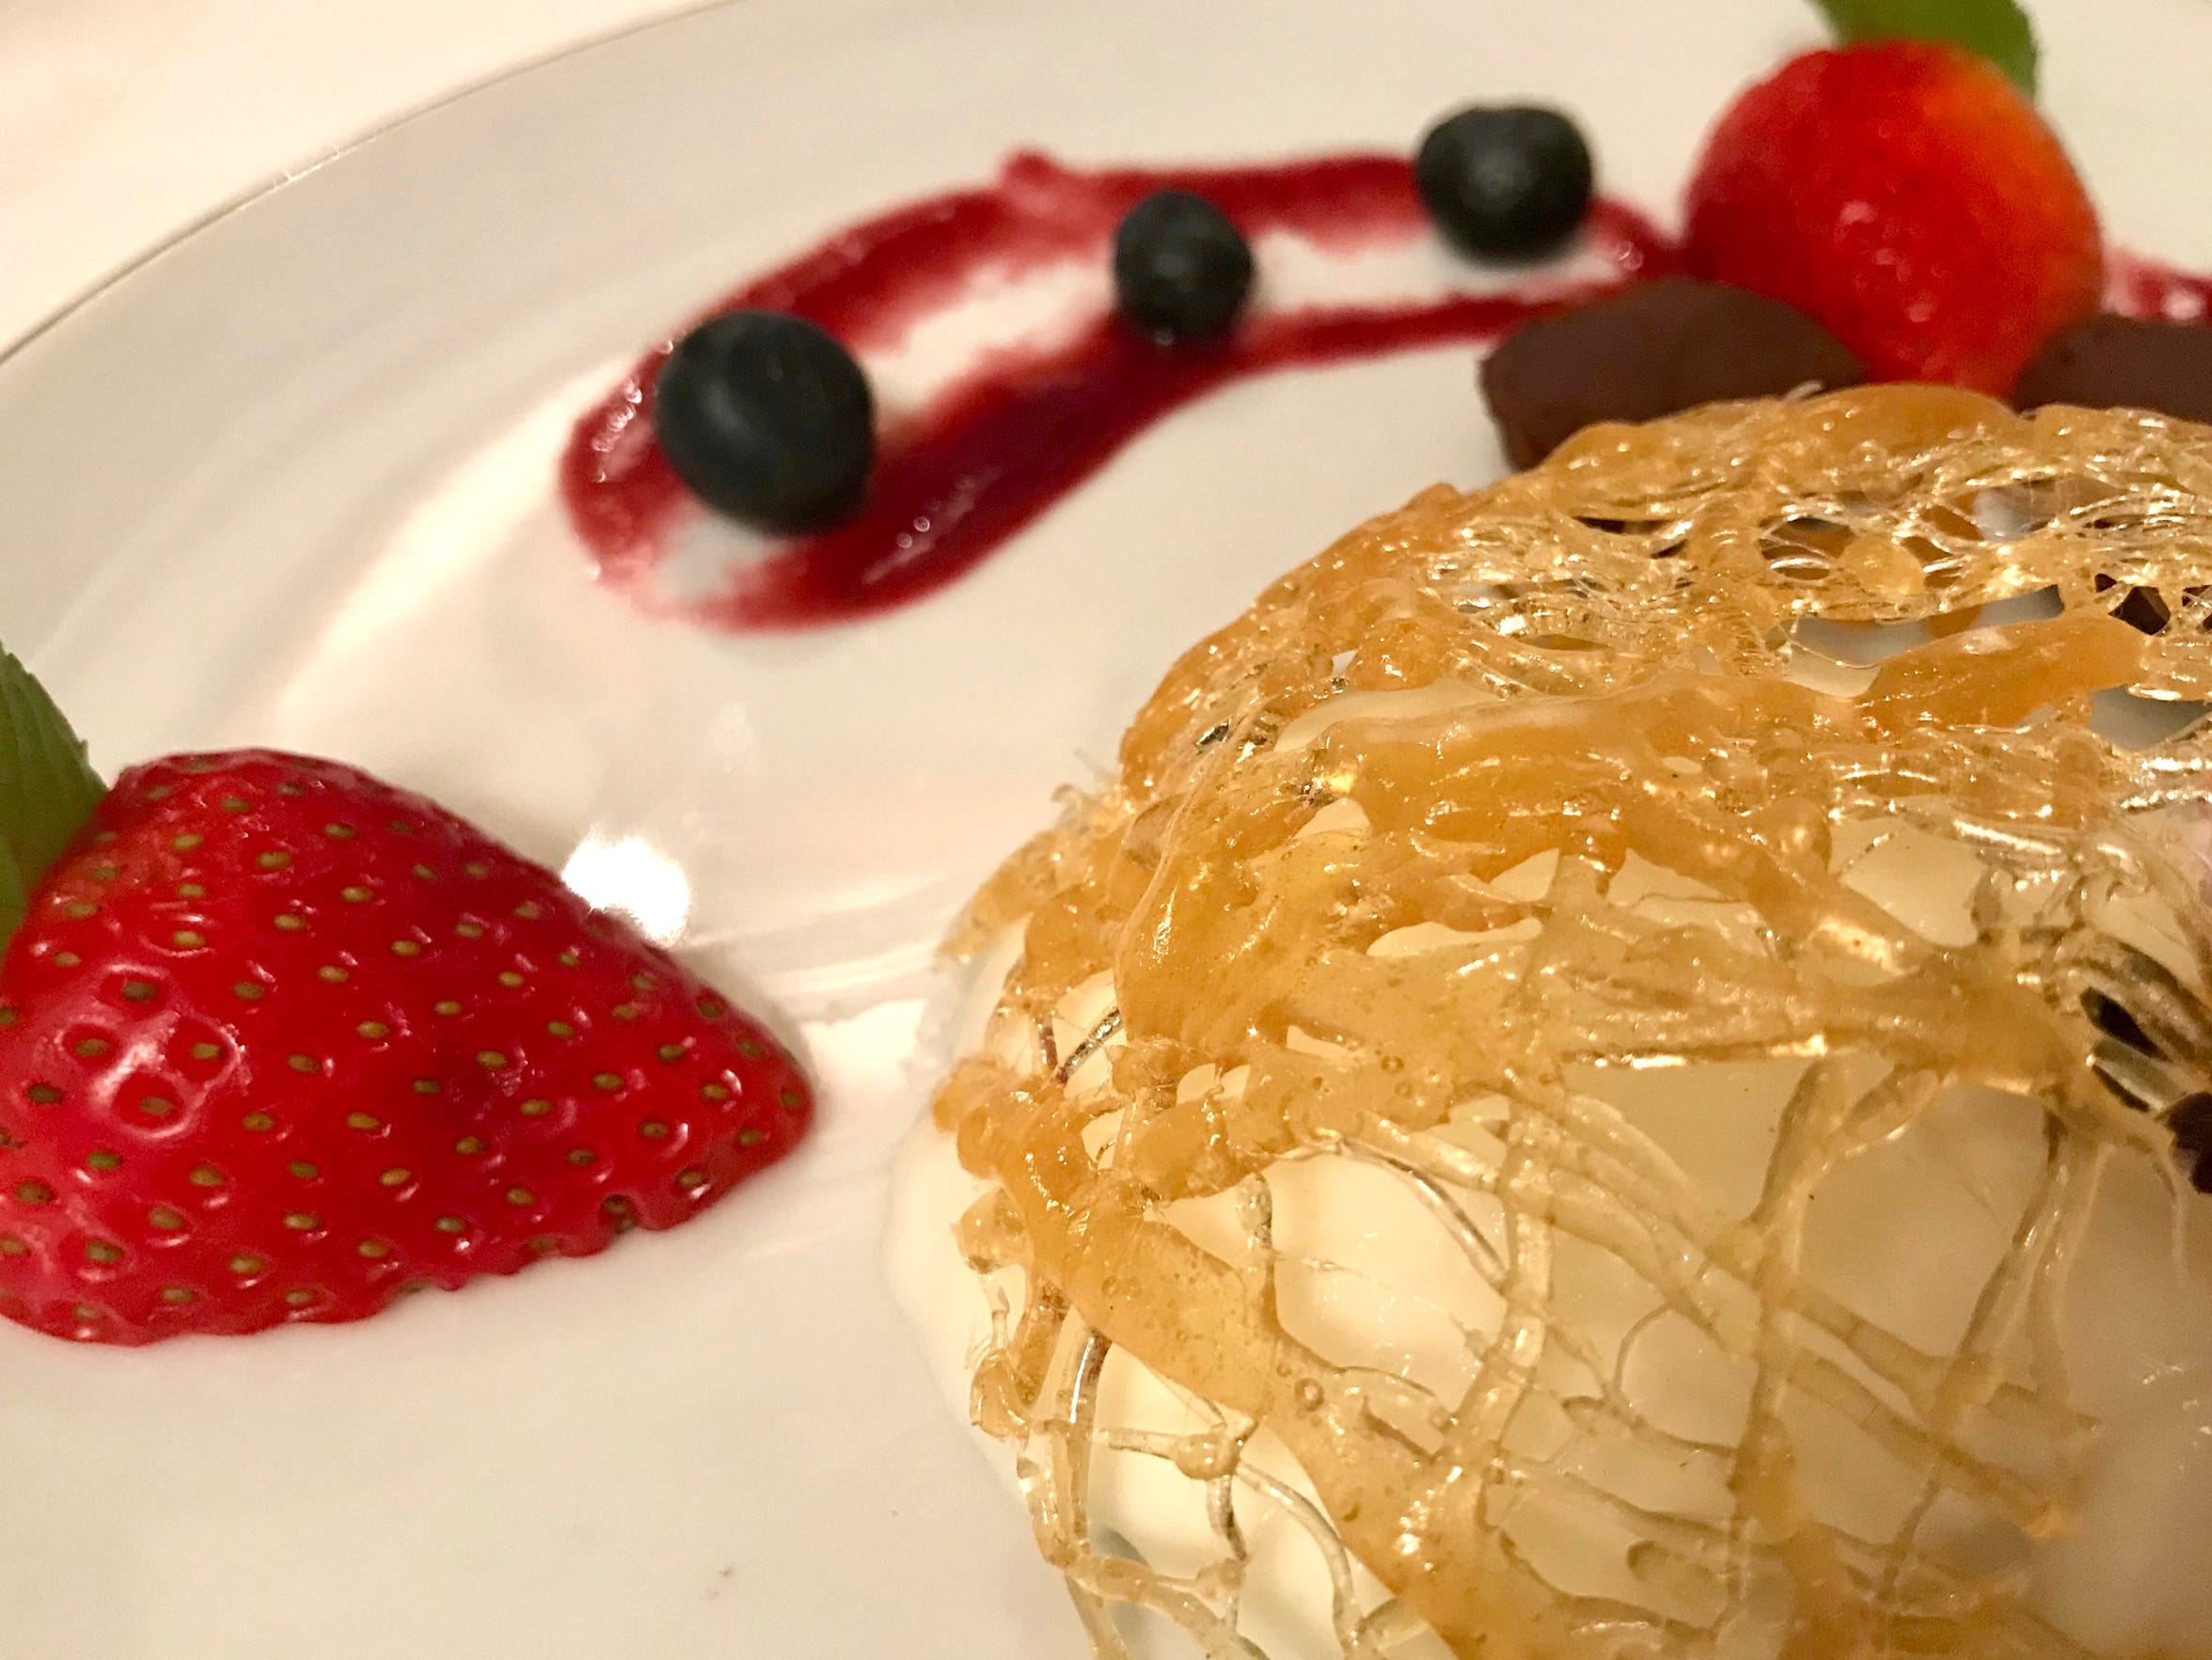 Dessert at Lagniappe Brasserie, 17001 W. Greenfield Ave., New Berlin, might include a rarely seen classic, like this sugar cage. It's set over panna cotta with fresh berries.